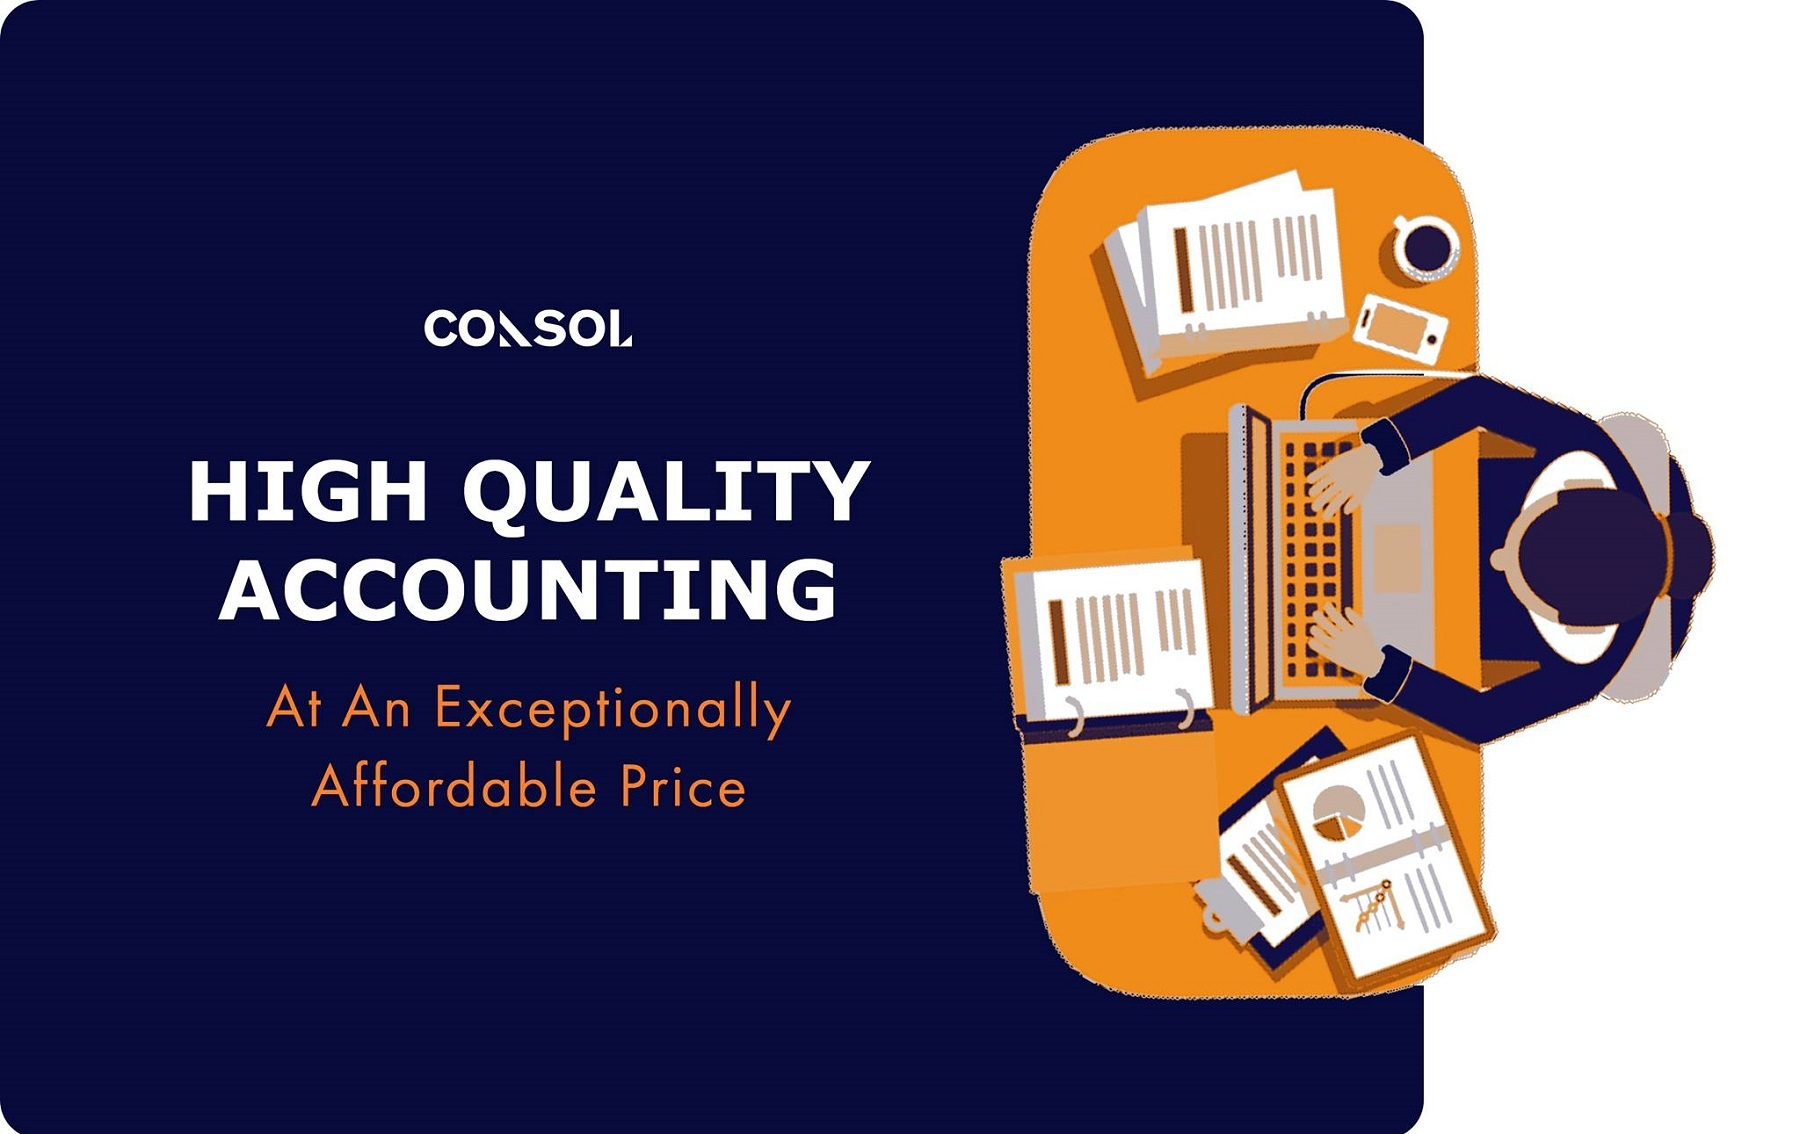 consol accounting (@consolgroupnz) Cover Image